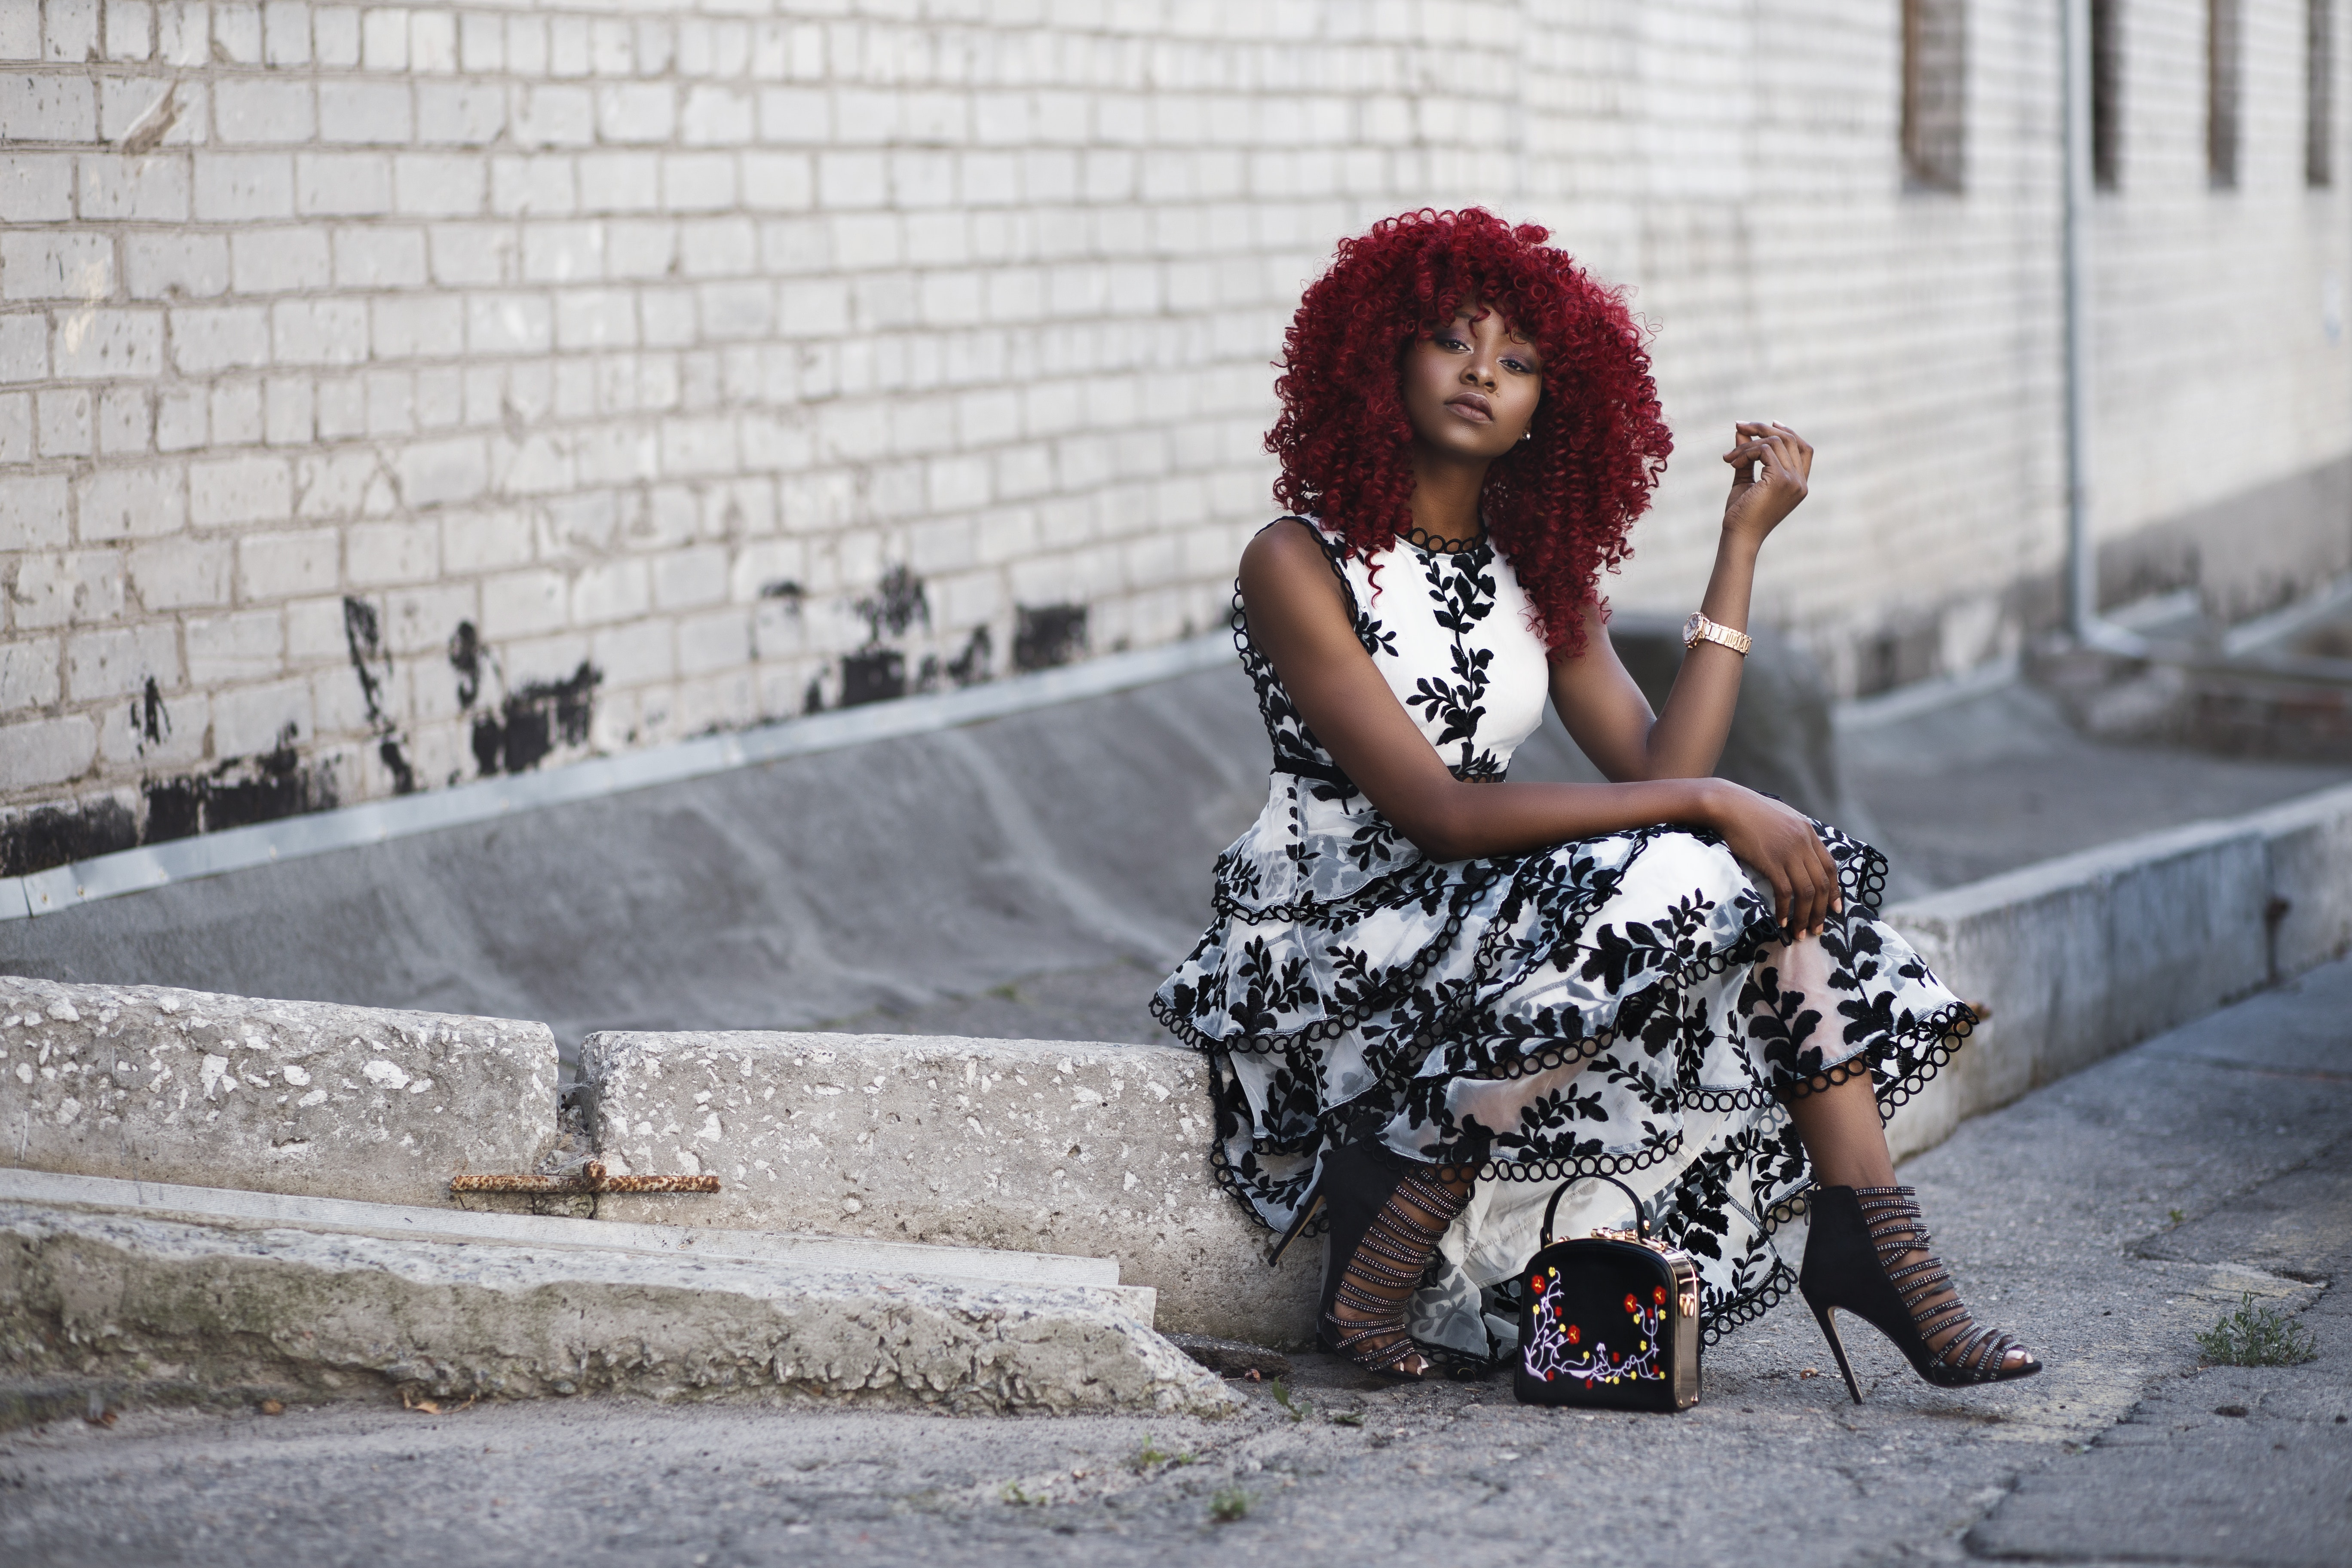 Red Haired Woman in White and Black Floral Sleeveless Maxi Dress, African, Red hair, Outside, Pavement, HQ Photo